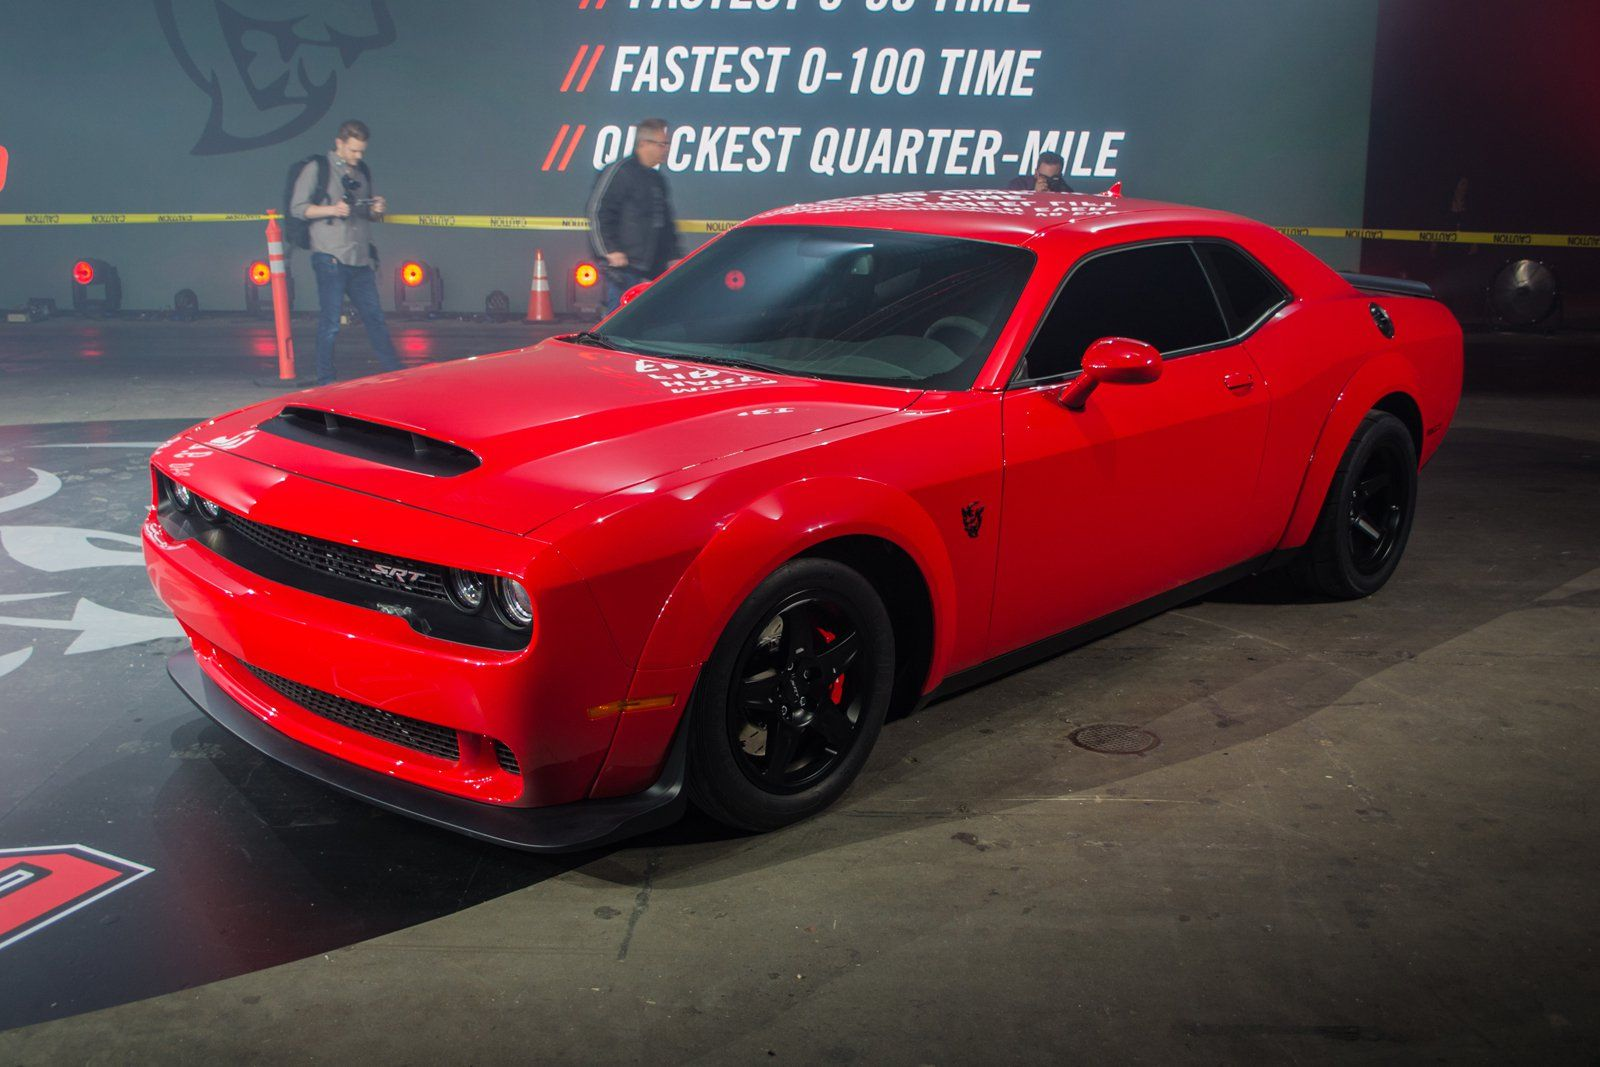 After about 10 000 teasers the wait is over and the 2018 dodge challenger srt demon is